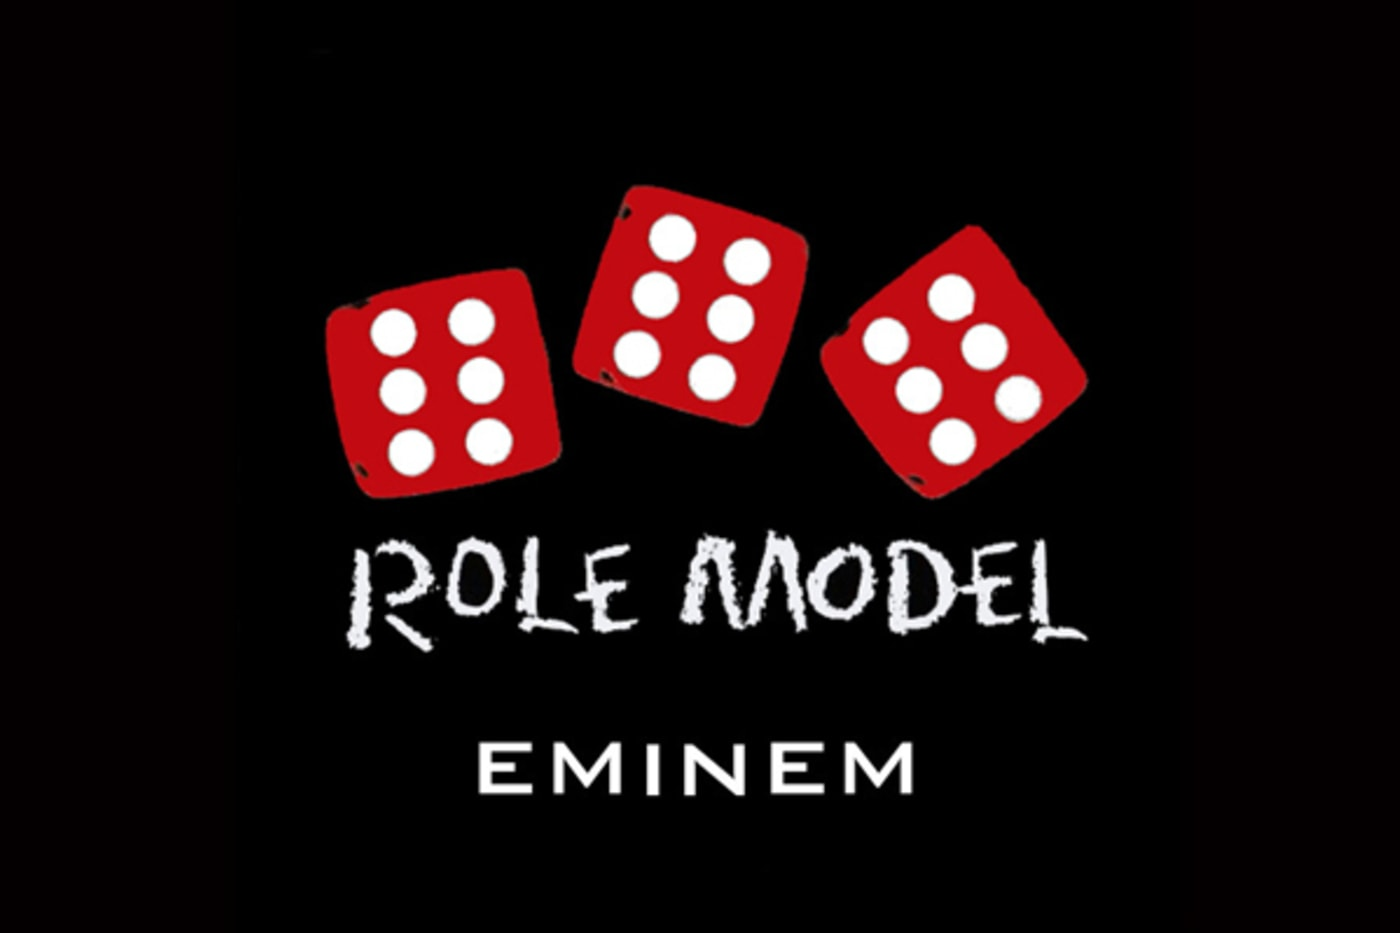 best eminem songs role model